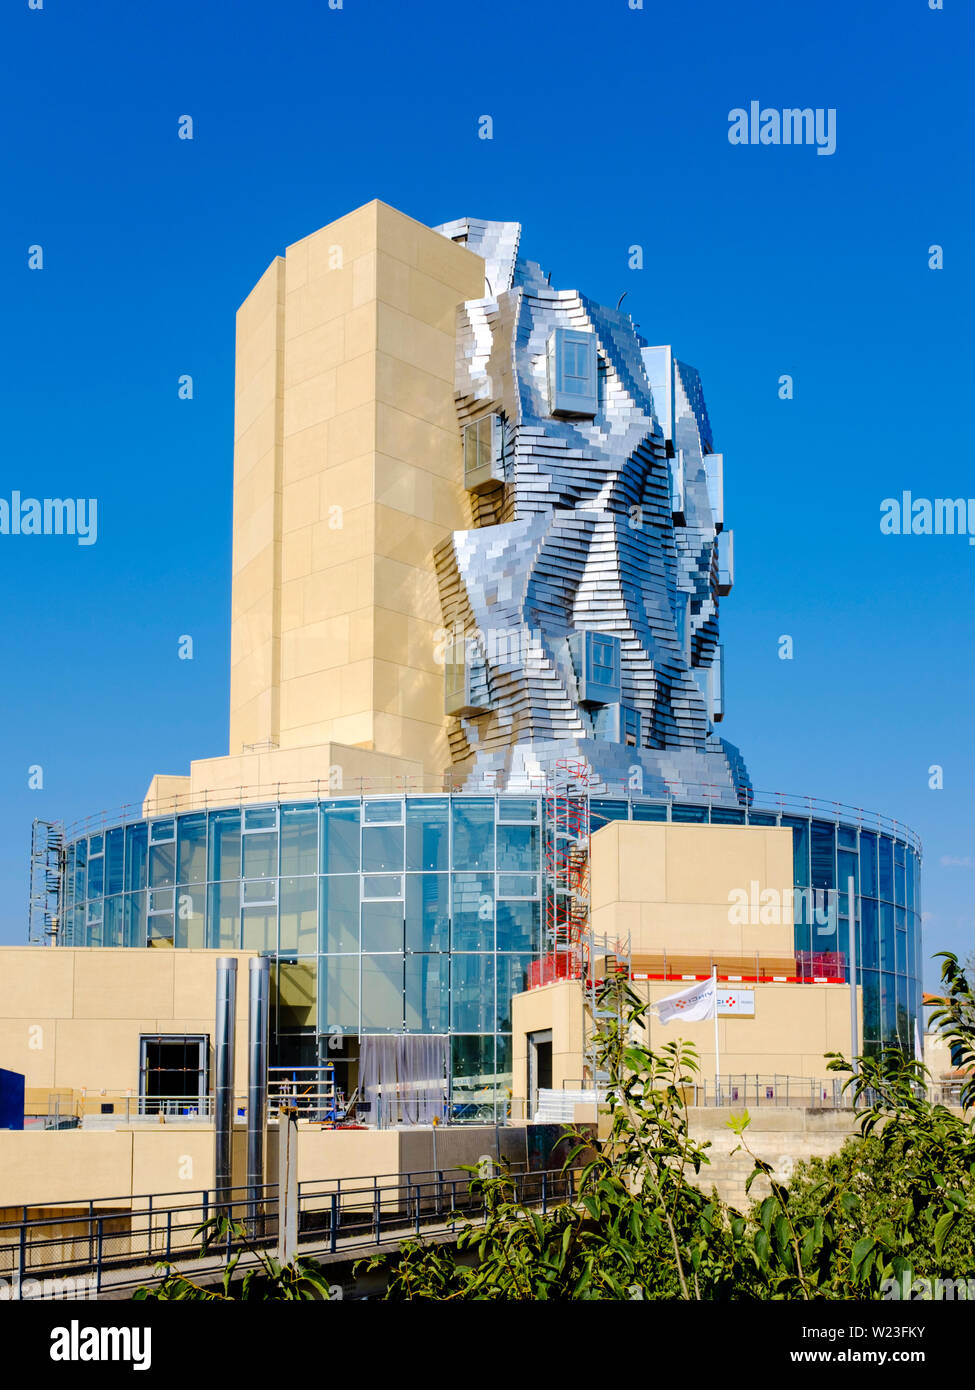 LUMA Arles building by Frank Gehry, June 2019 Stock Photo: 259463007